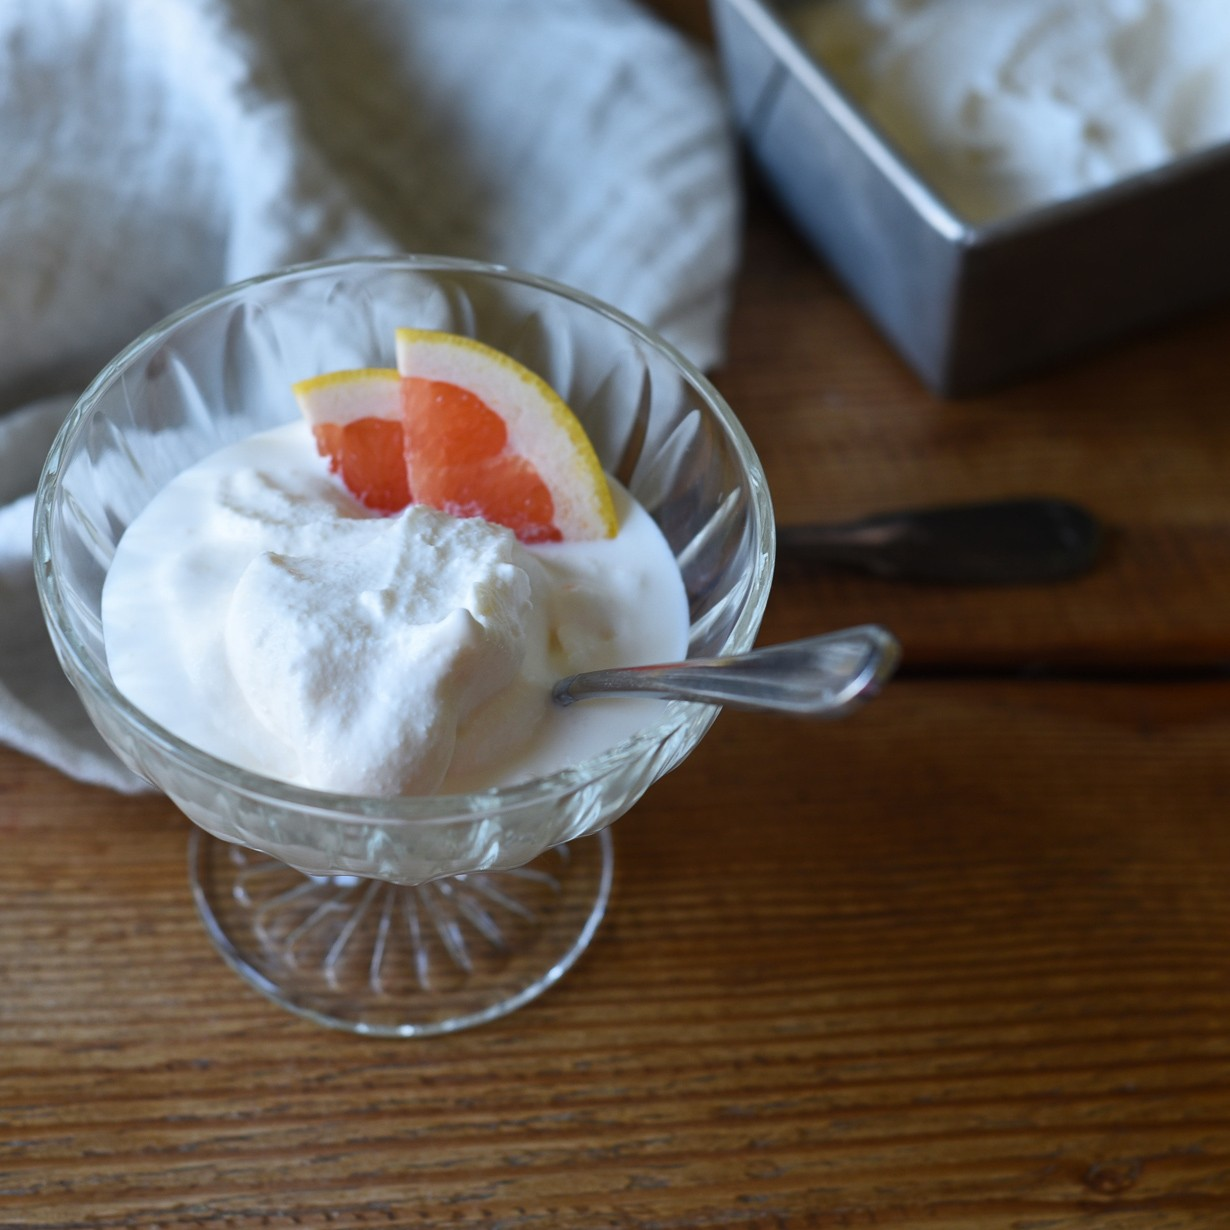 Grapefruit Frozen Yogurt